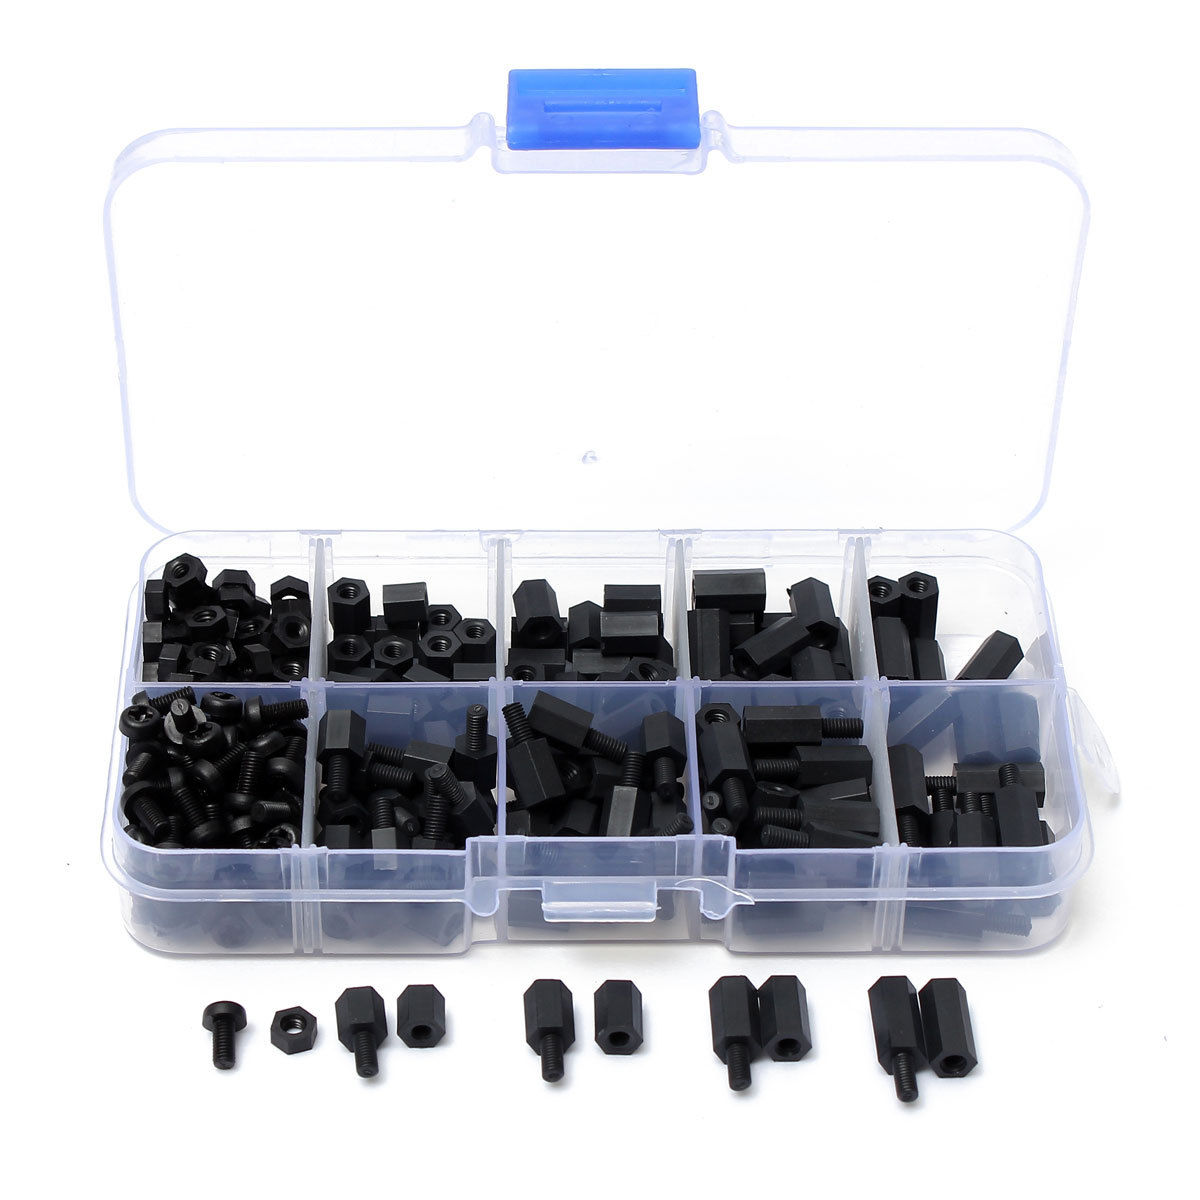 Promotion! 300pcs M3 Nylon Black M-F Hex Spacers Screw Nut Assortment Kit Stand-off Set 160pcs m3 nylon black m f hex spacers screw nut assortment kit stand off set box